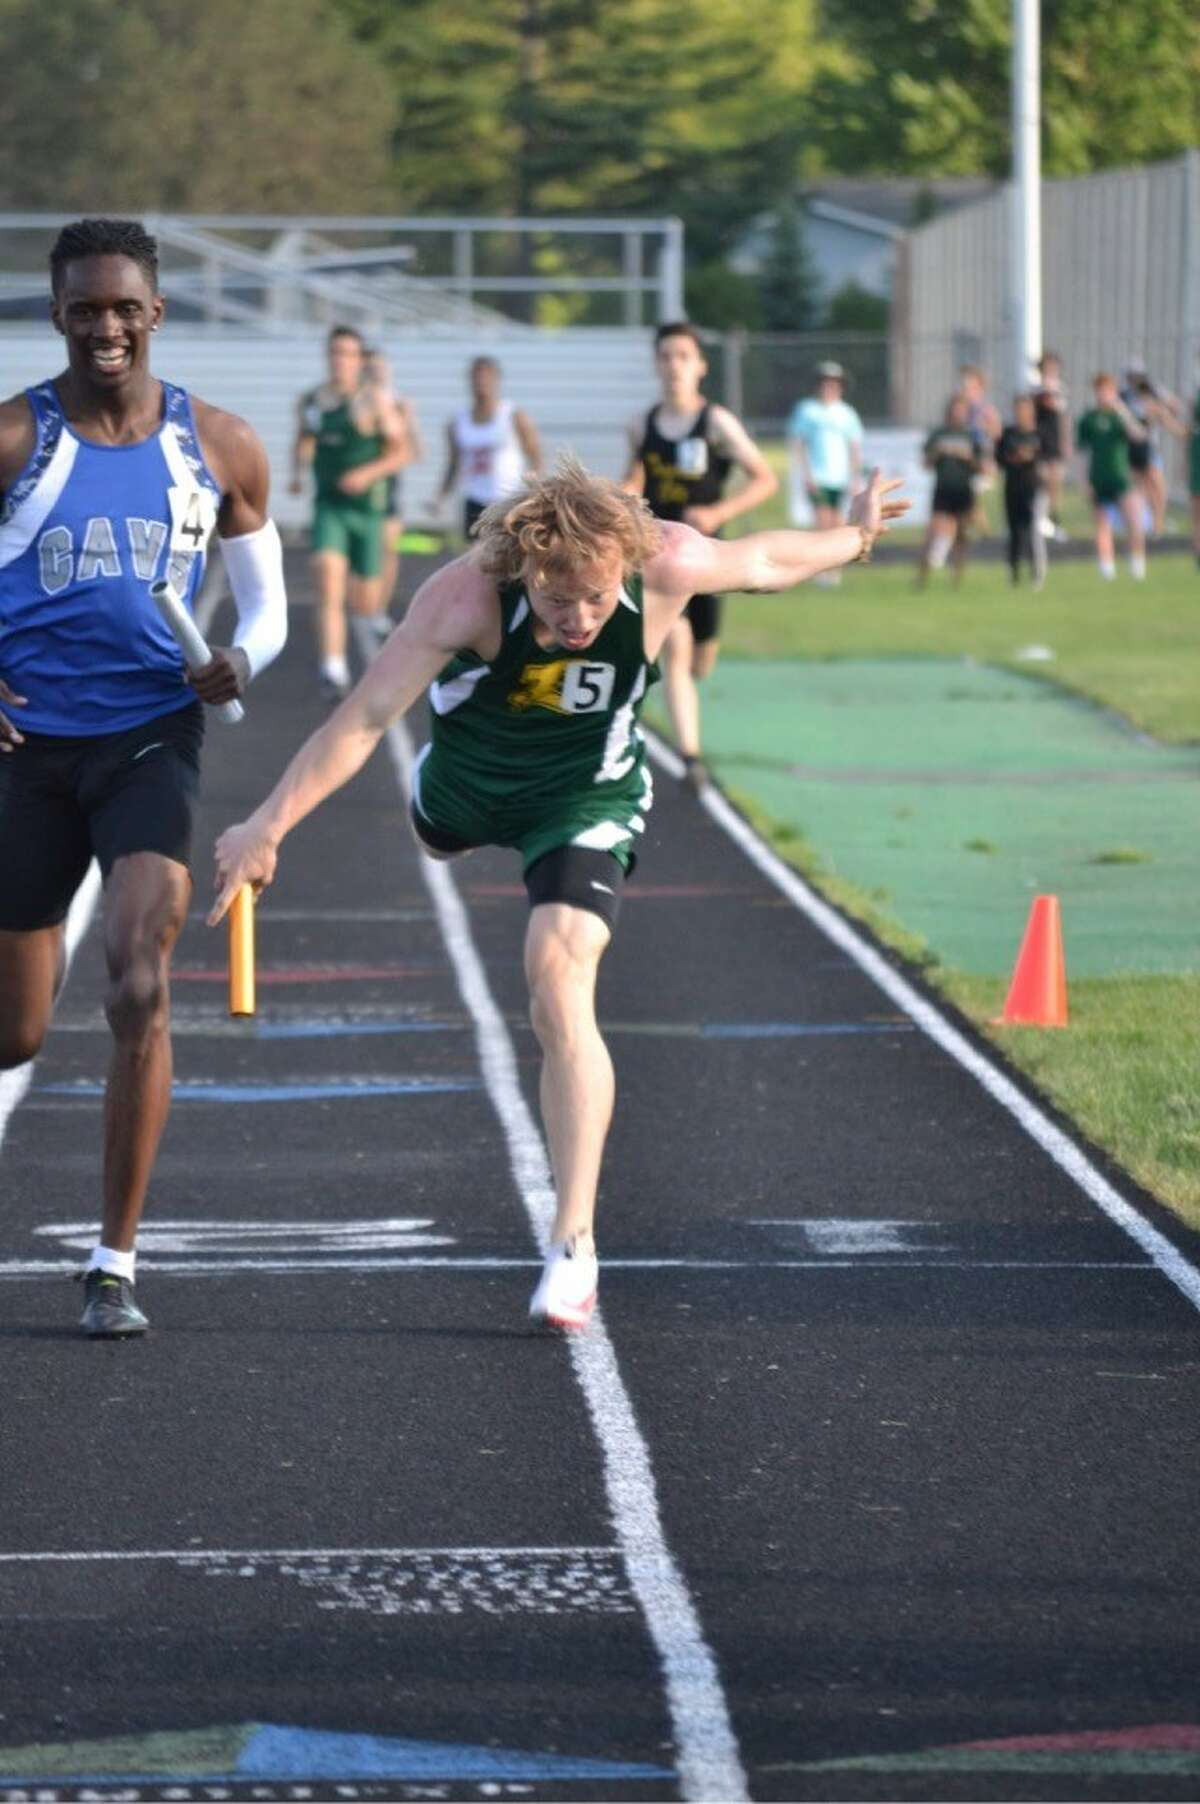 Dow High's Noah Reuter-Gushow edges out a runner from Flint Carman-Ainsworth to propel the Chargers' 1600-meter relay team to a regional championship during Saturday's Division 1 regional meet at Saginaw Heritage.